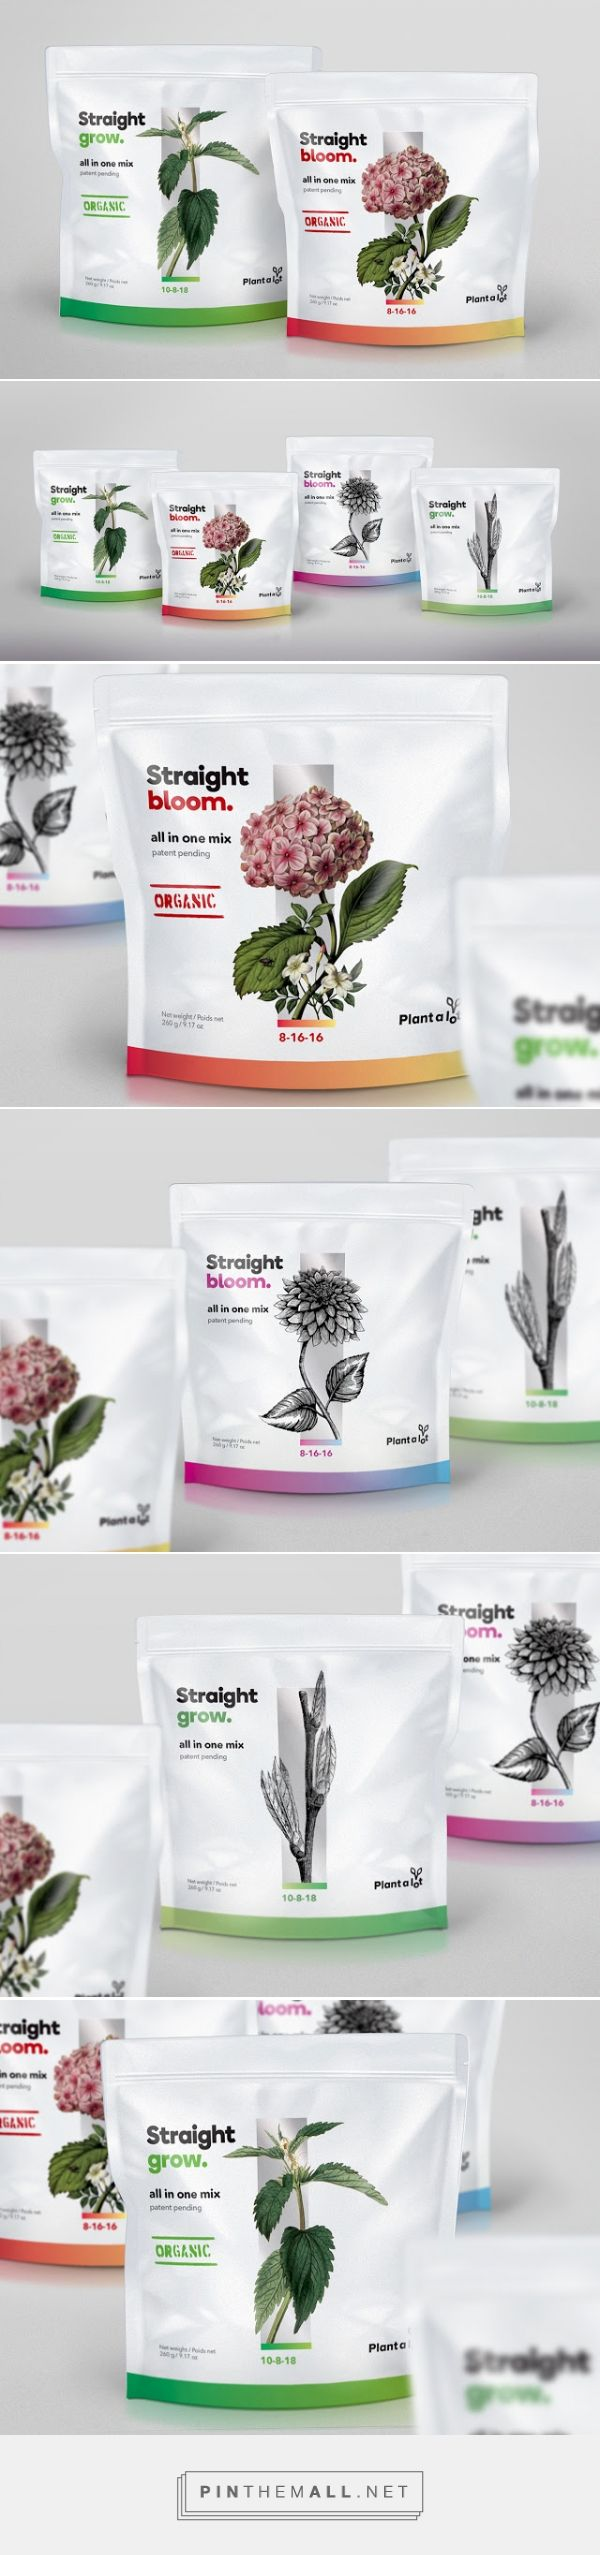 #Plant A Lot #packaging designed by Counterpunch - http://www.packagingoftheworld.com/2015/06/plant-lot.html